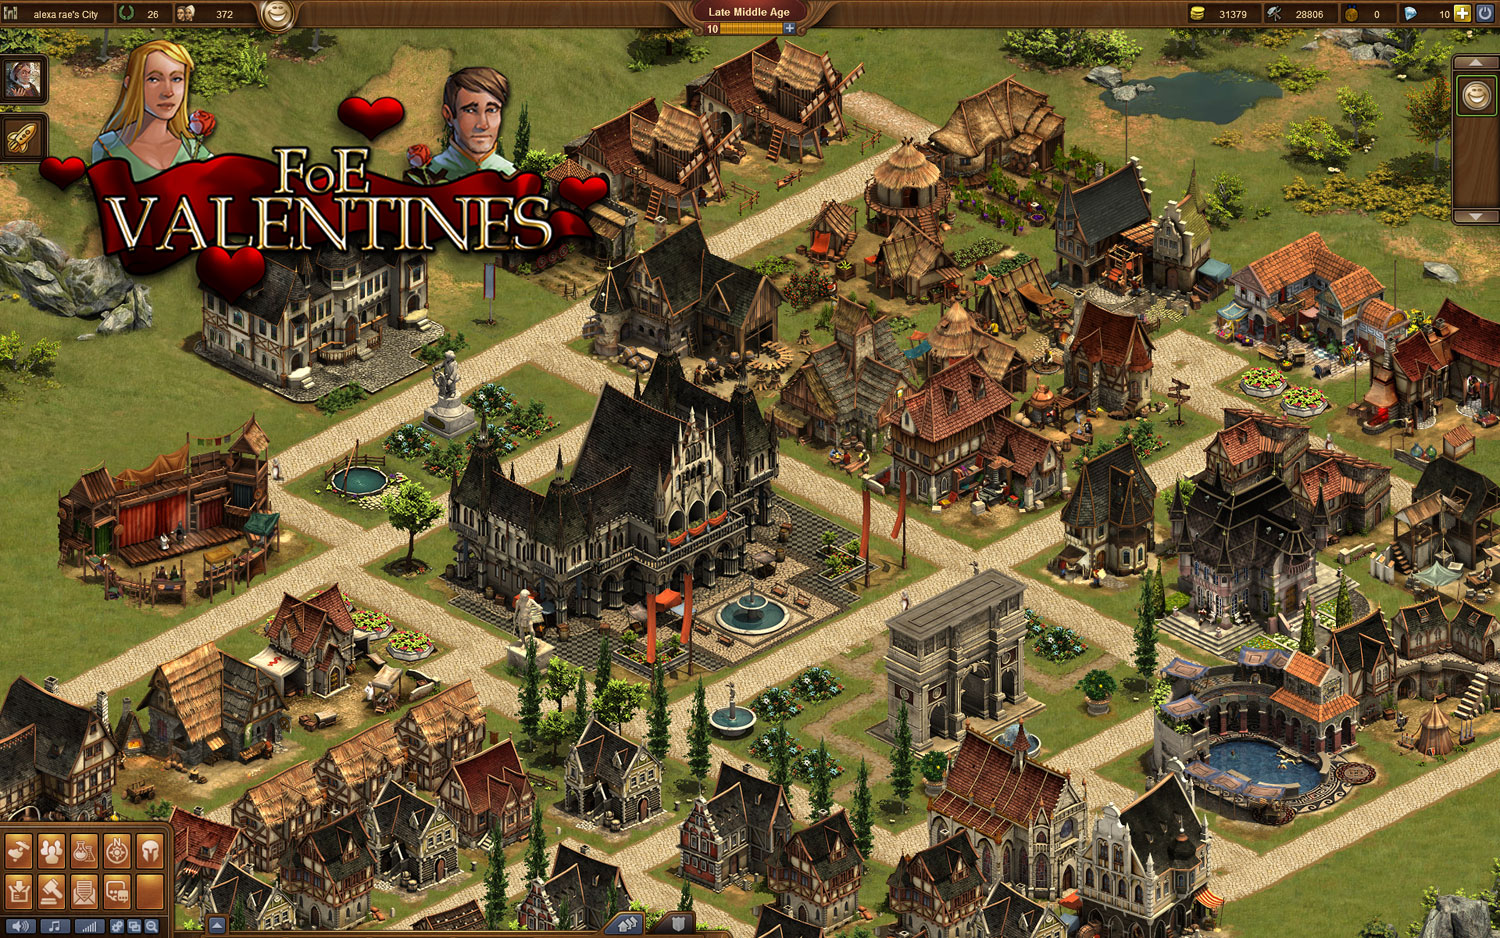 In Forge of Empires wird's am Valentinstag romantisch